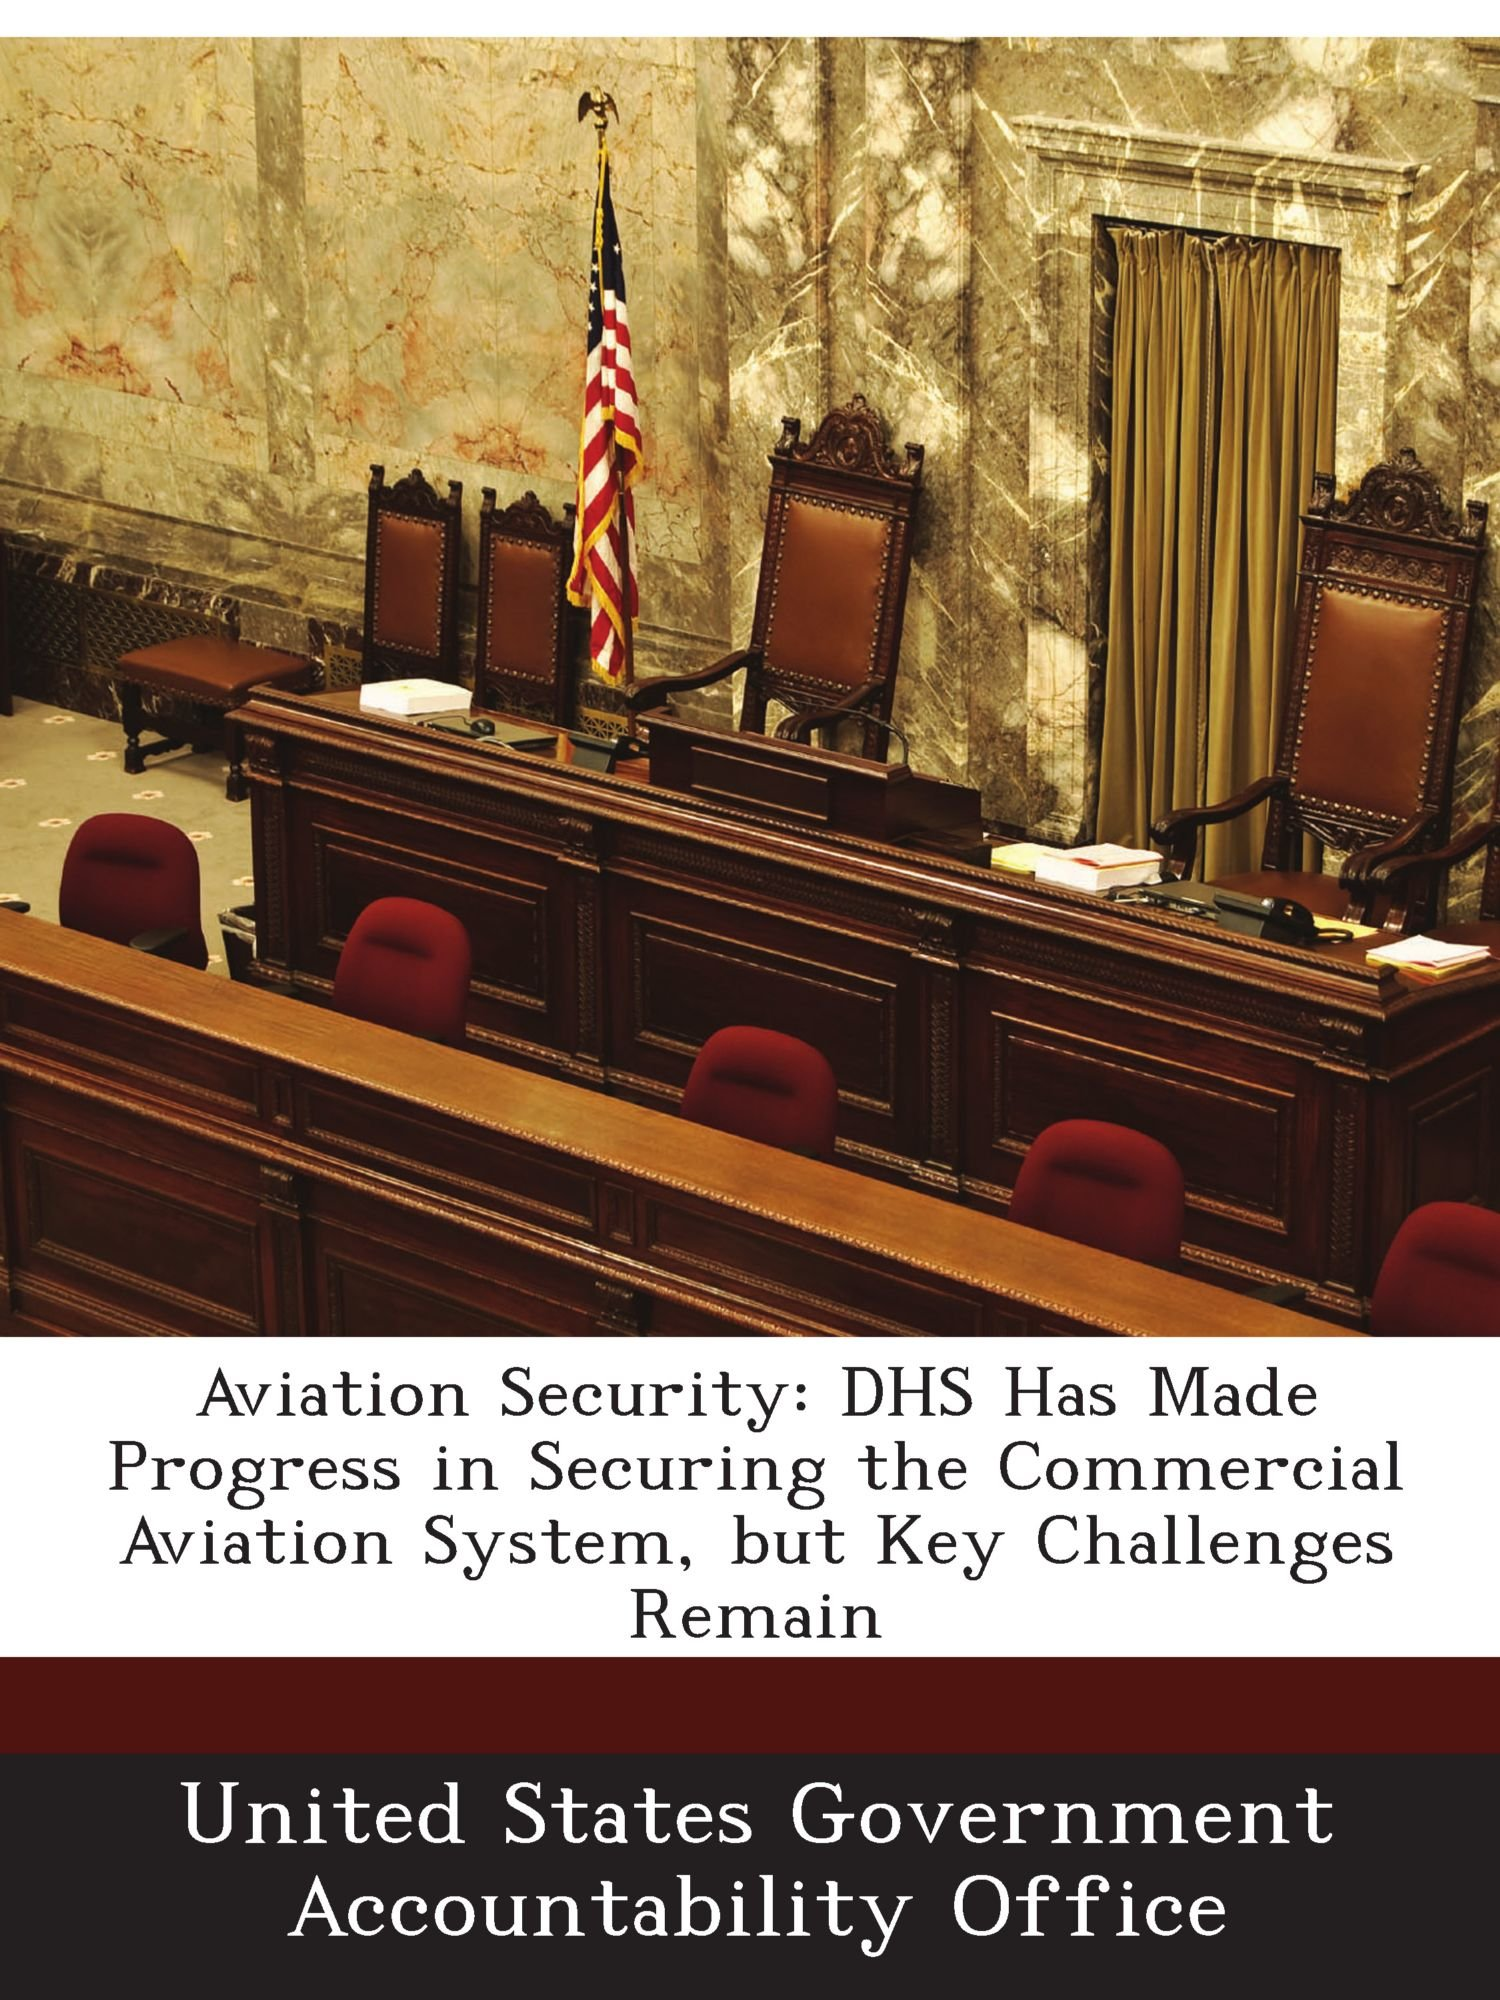 Aviation Security: DHS Has Made Progress in Securing the Commercial Aviation System, but Key Challenges Remain